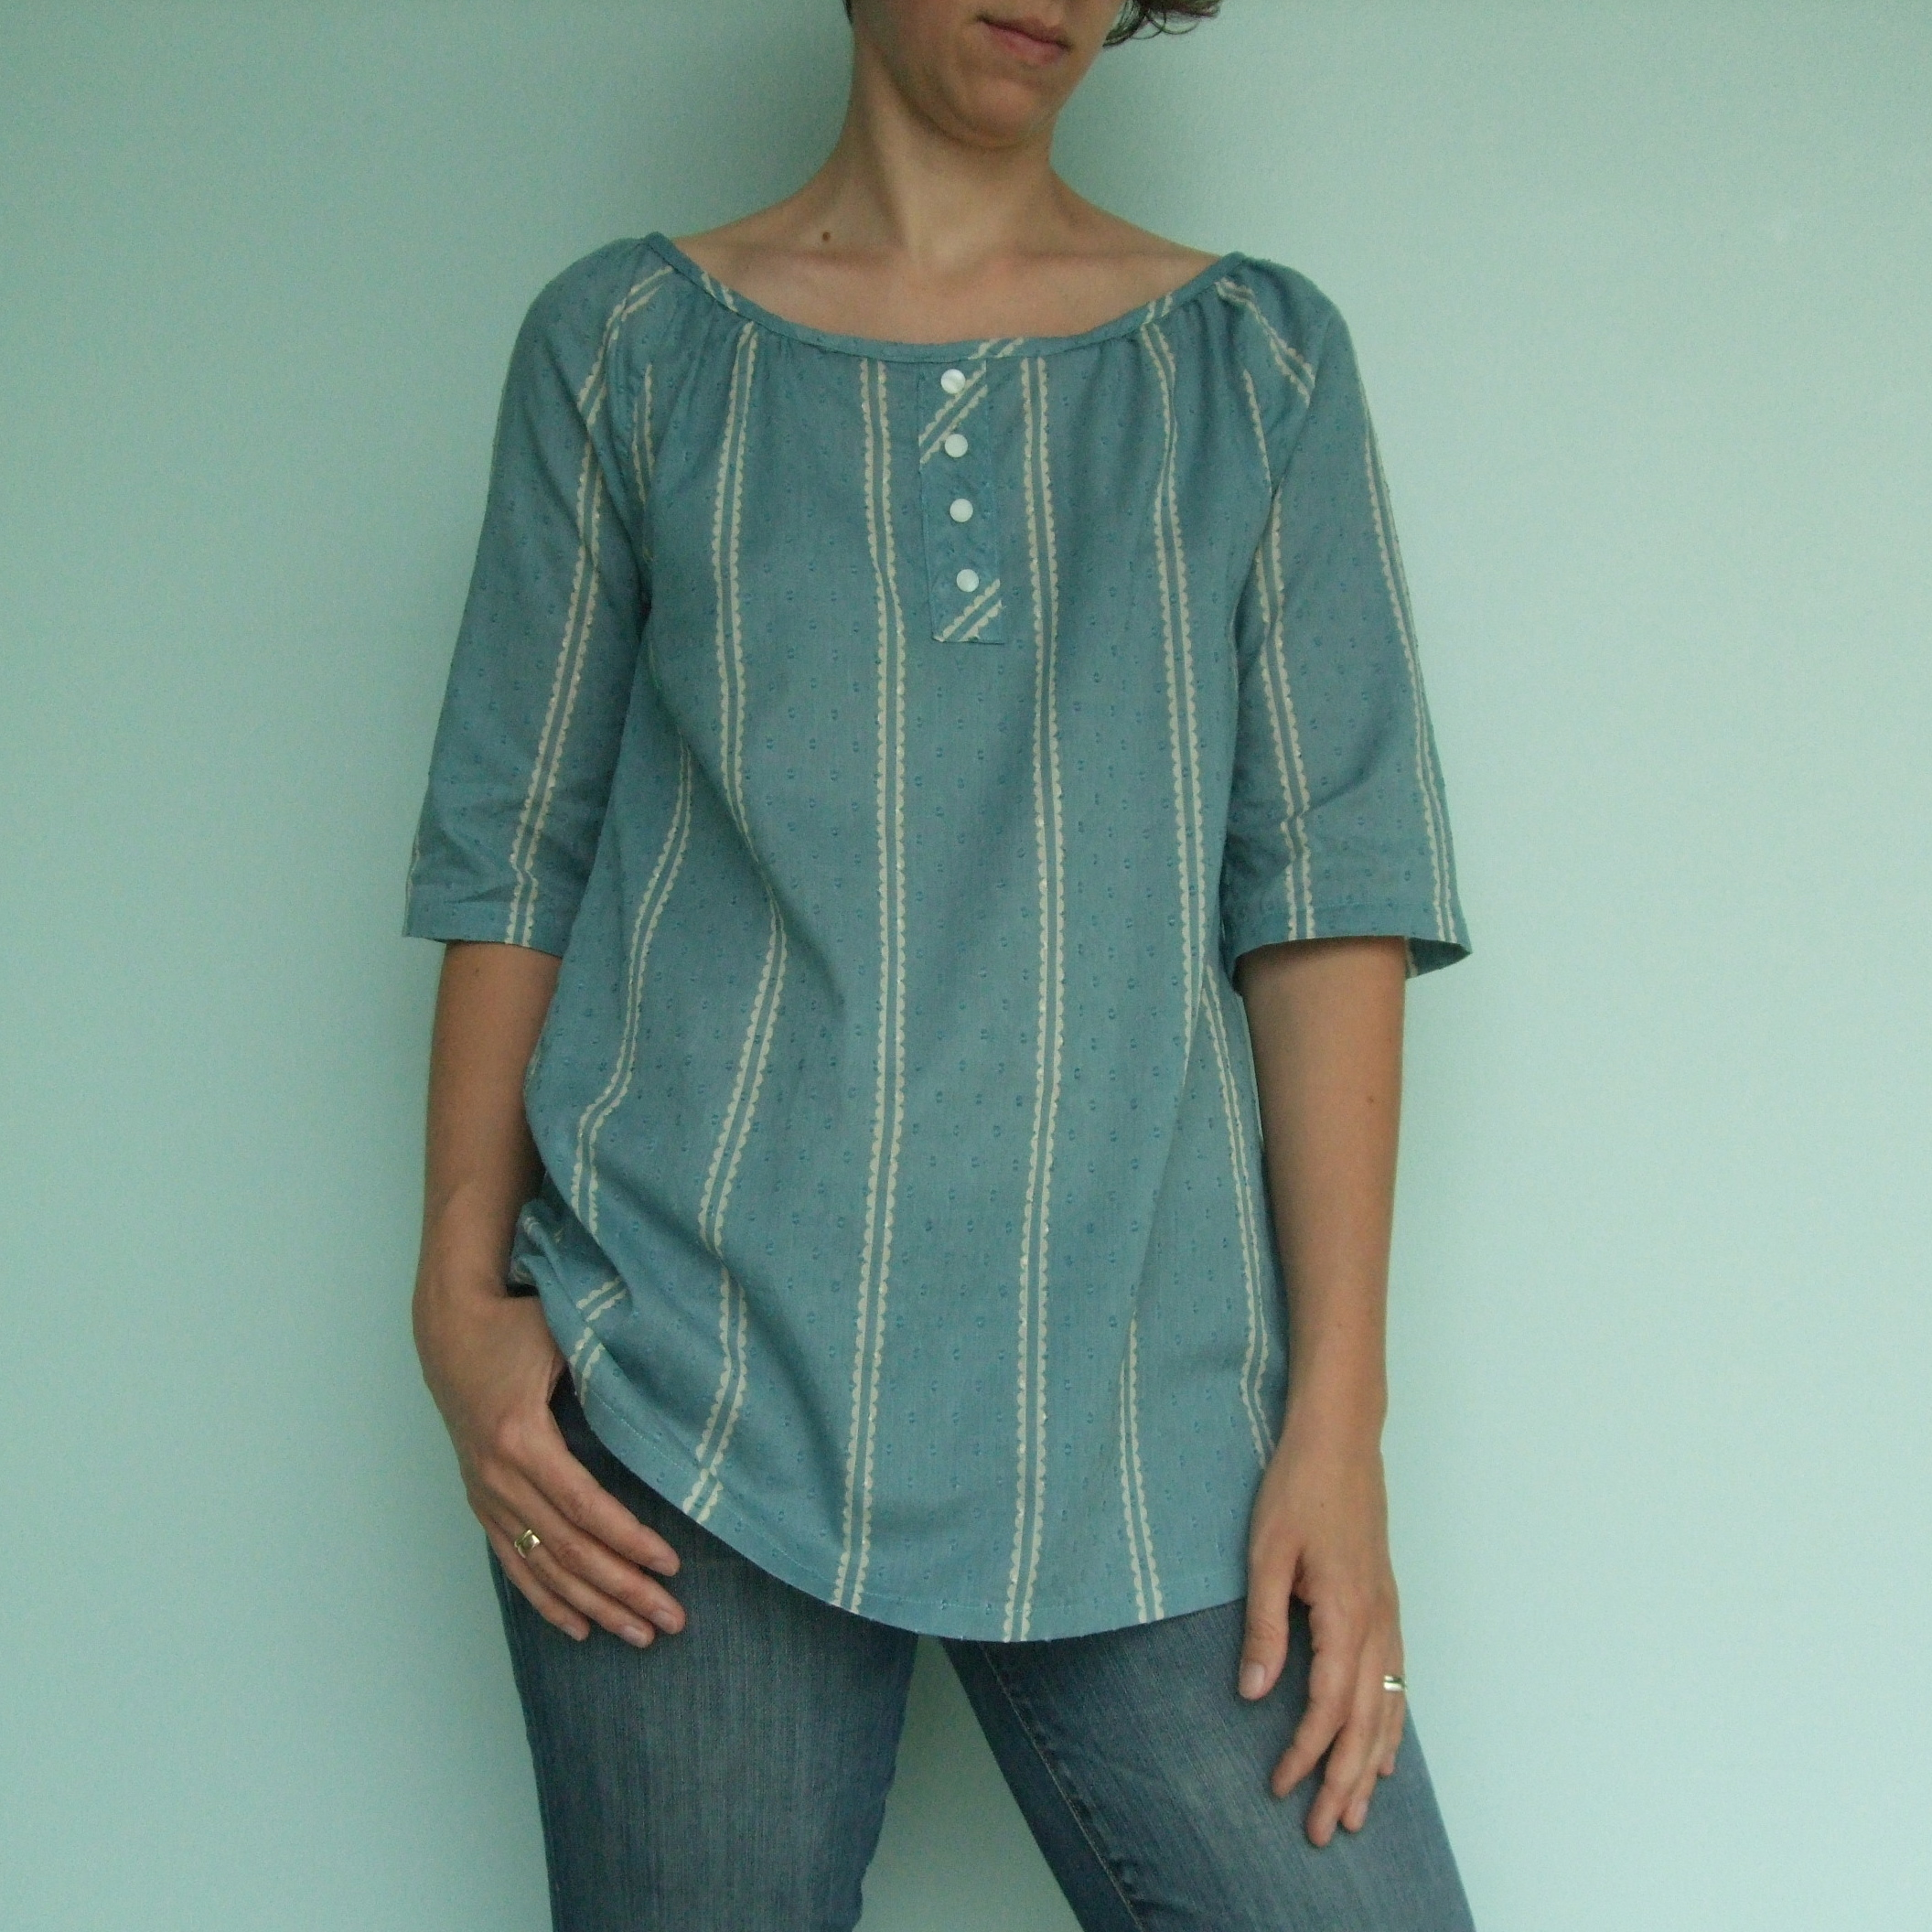 Modern blouse sewing patterns smart casual blouse for Pattern shirts for women